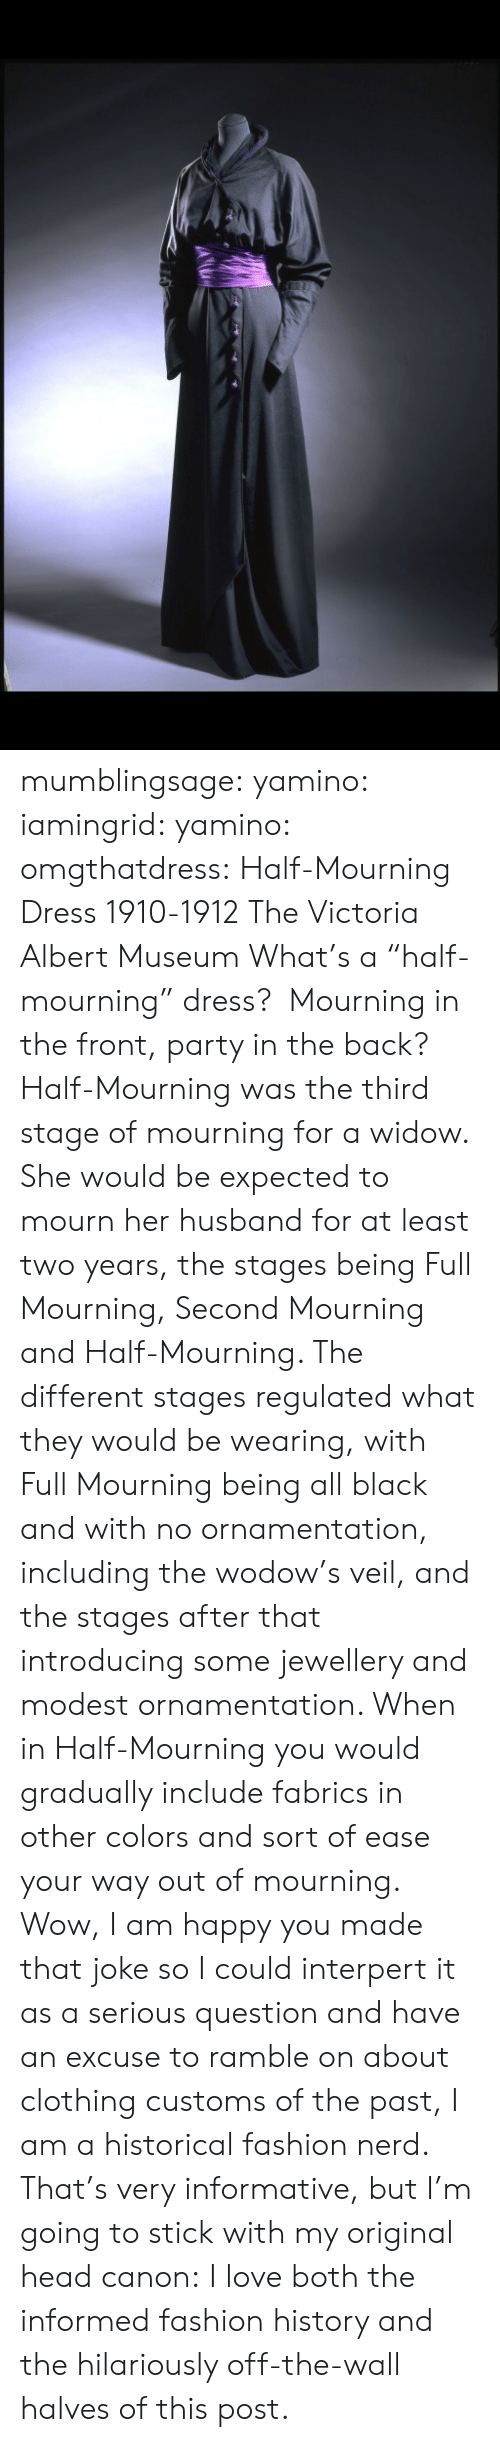 """Fashion, Head, and Love: mumblingsage:  yamino:  iamingrid:  yamino:  omgthatdress:  Half-Mourning Dress 1910-1912 The Victoria  Albert Museum  What's a """"half-mourning"""" dress? Mourning in the front, party in the back?  Half-Mourning was the third stage of mourning for a widow. She would be expected to mourn her husband for at least two years, the stages being Full Mourning, Second Mourning and Half-Mourning. The different stages regulated what they would be wearing, with Full Mourning being all black and with no ornamentation, including the wodow's veil, and the stages after that introducing some jewellery and modest ornamentation. When in Half-Mourning you would gradually include fabrics in other colors and sort of ease your way out of mourning. Wow, I am happy you made that joke so I could interpert it as a serious question and have an excuse to ramble on about clothing customs of the past, I am a historical fashion nerd.  That's very informative, but I'm going to stick with my original head canon:   I love both the informed fashion history and the hilariously off-the-wall halves of this post."""